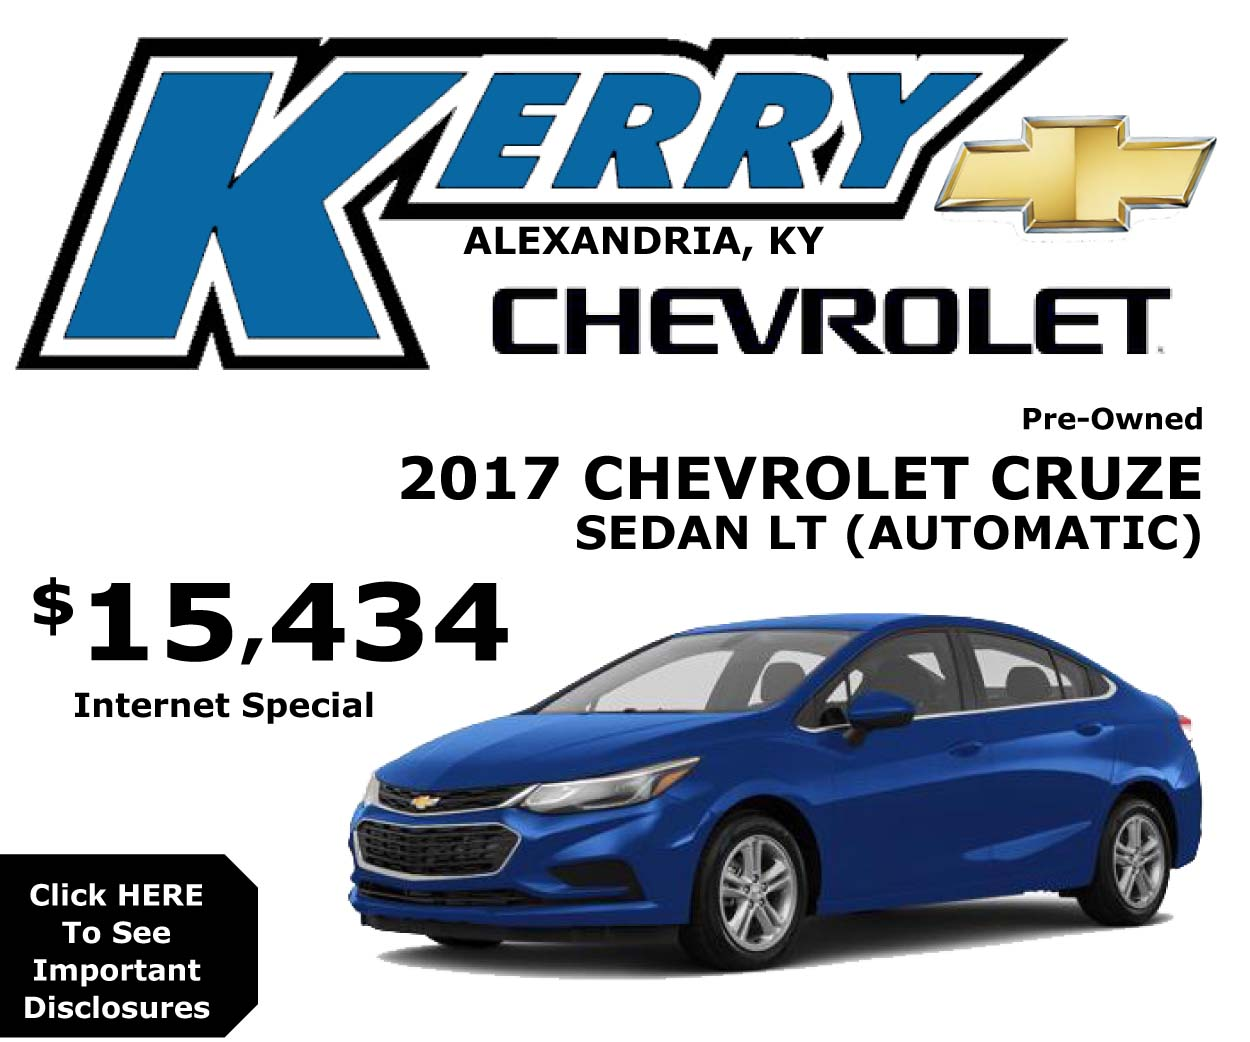 Kerry Chevrolet Cruze